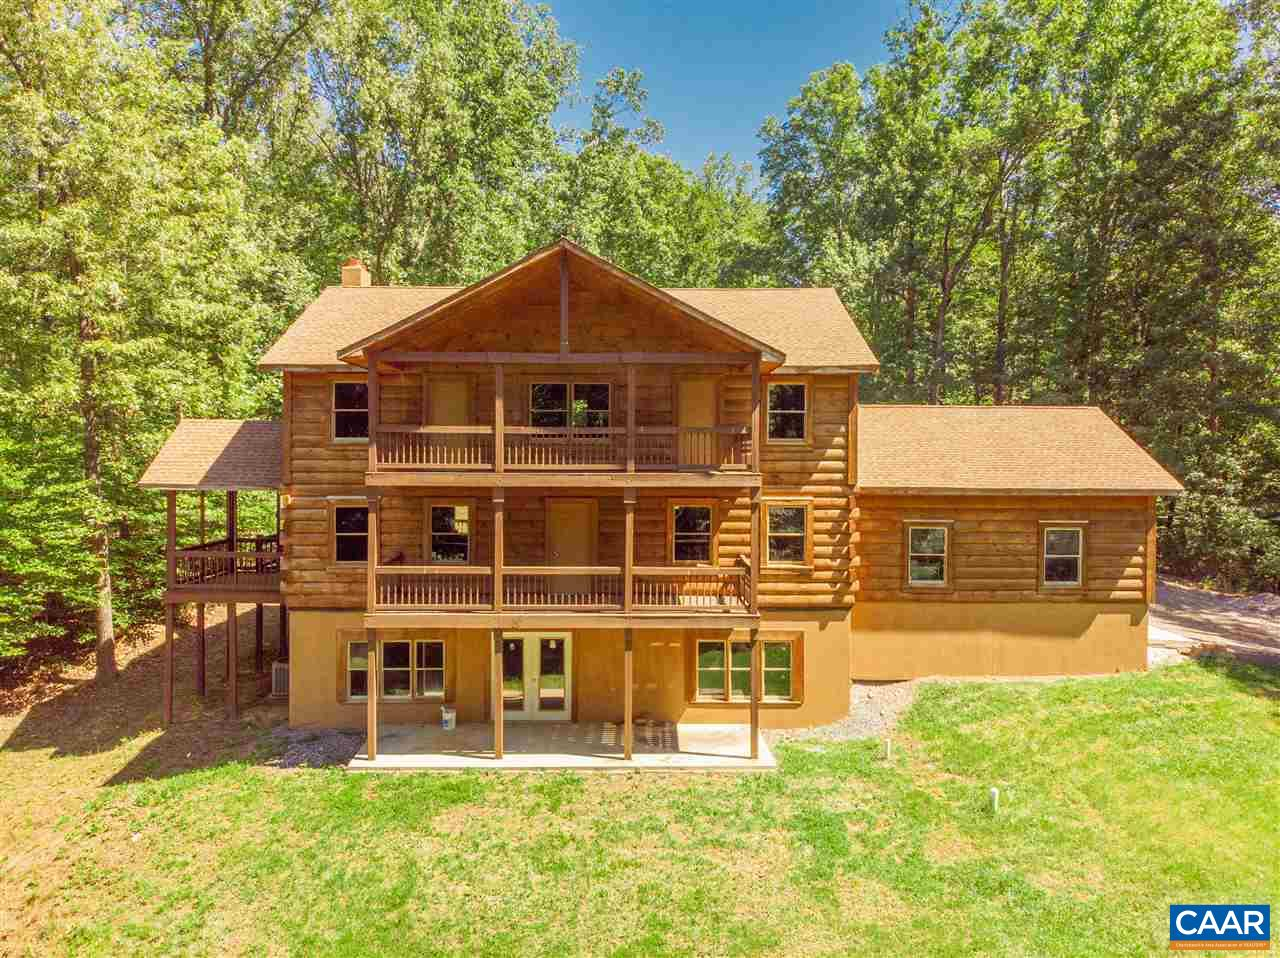 670 BEND OF RIVER LN, LOUISA, VA 23093